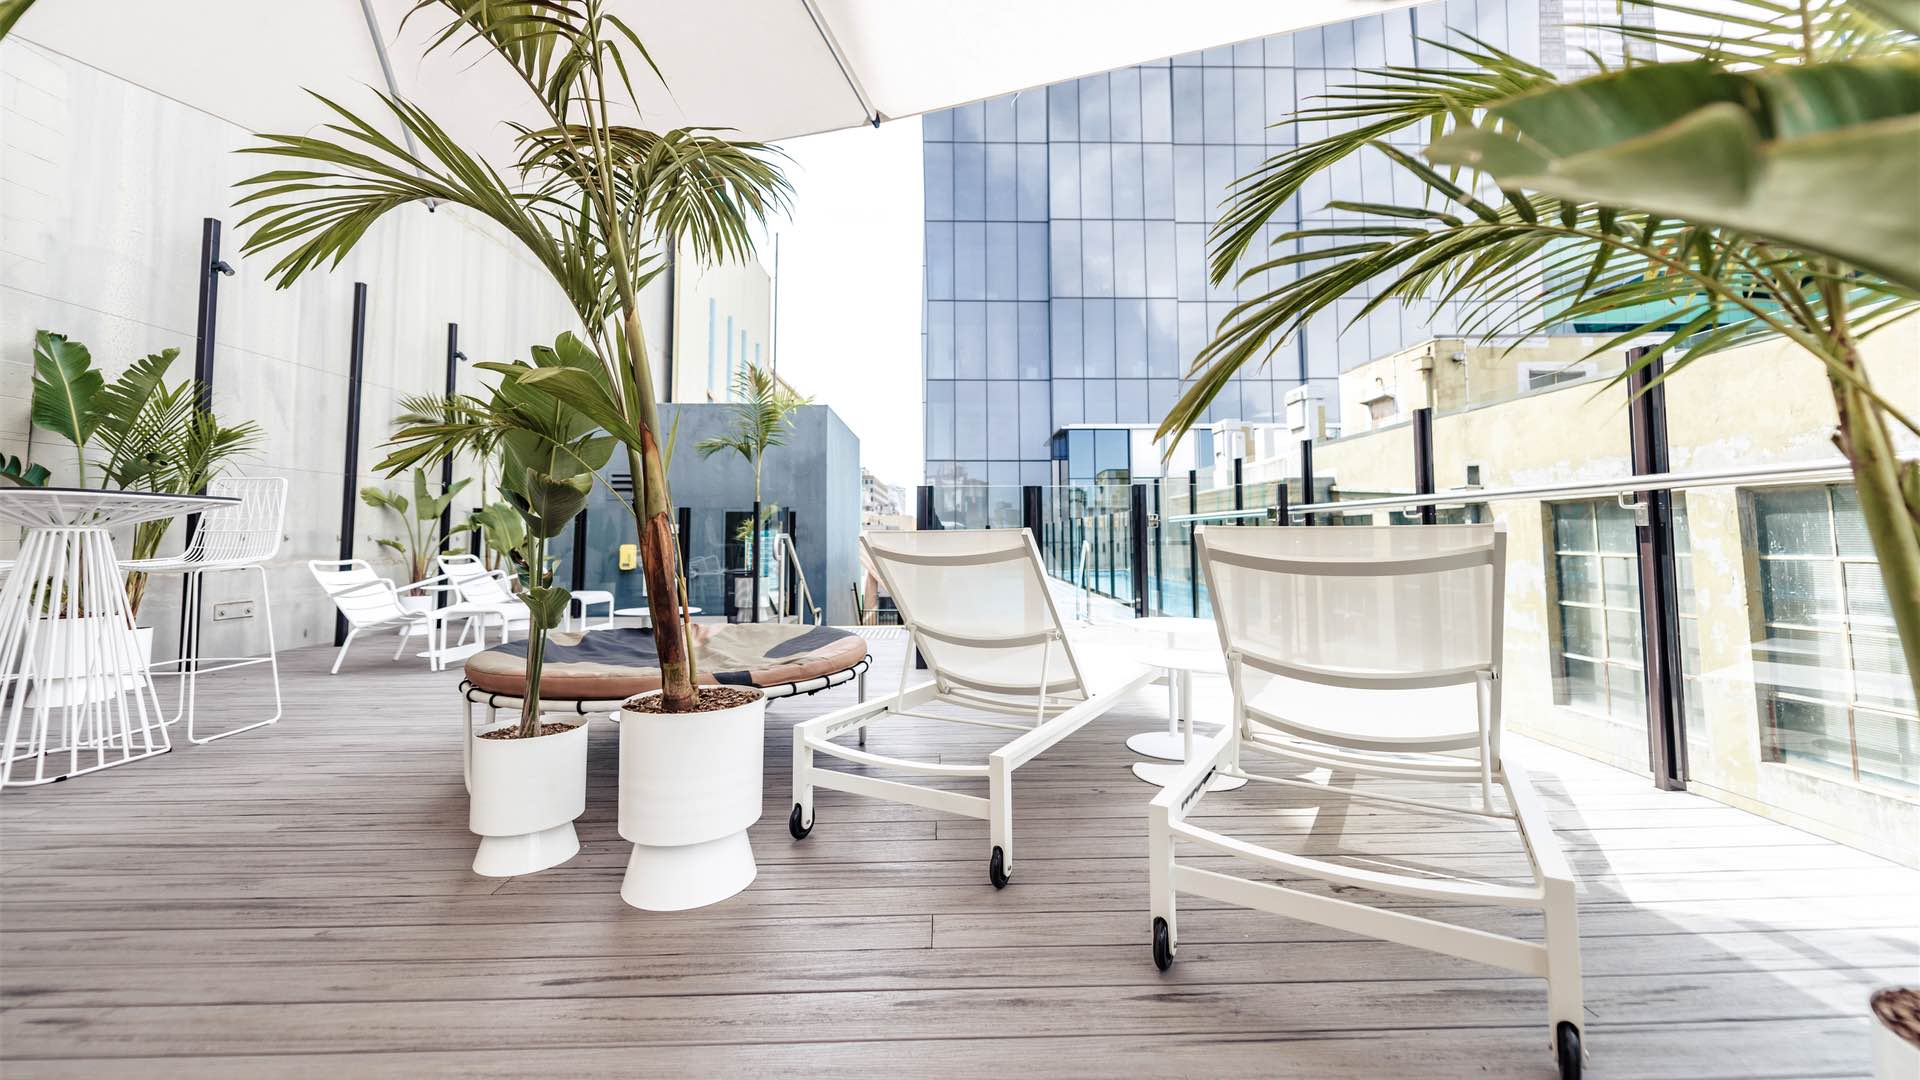 Adelphi hotel 39 s revamped pool deck is the ultimate way to - Adelphi hotel melbourne swimming pool ...